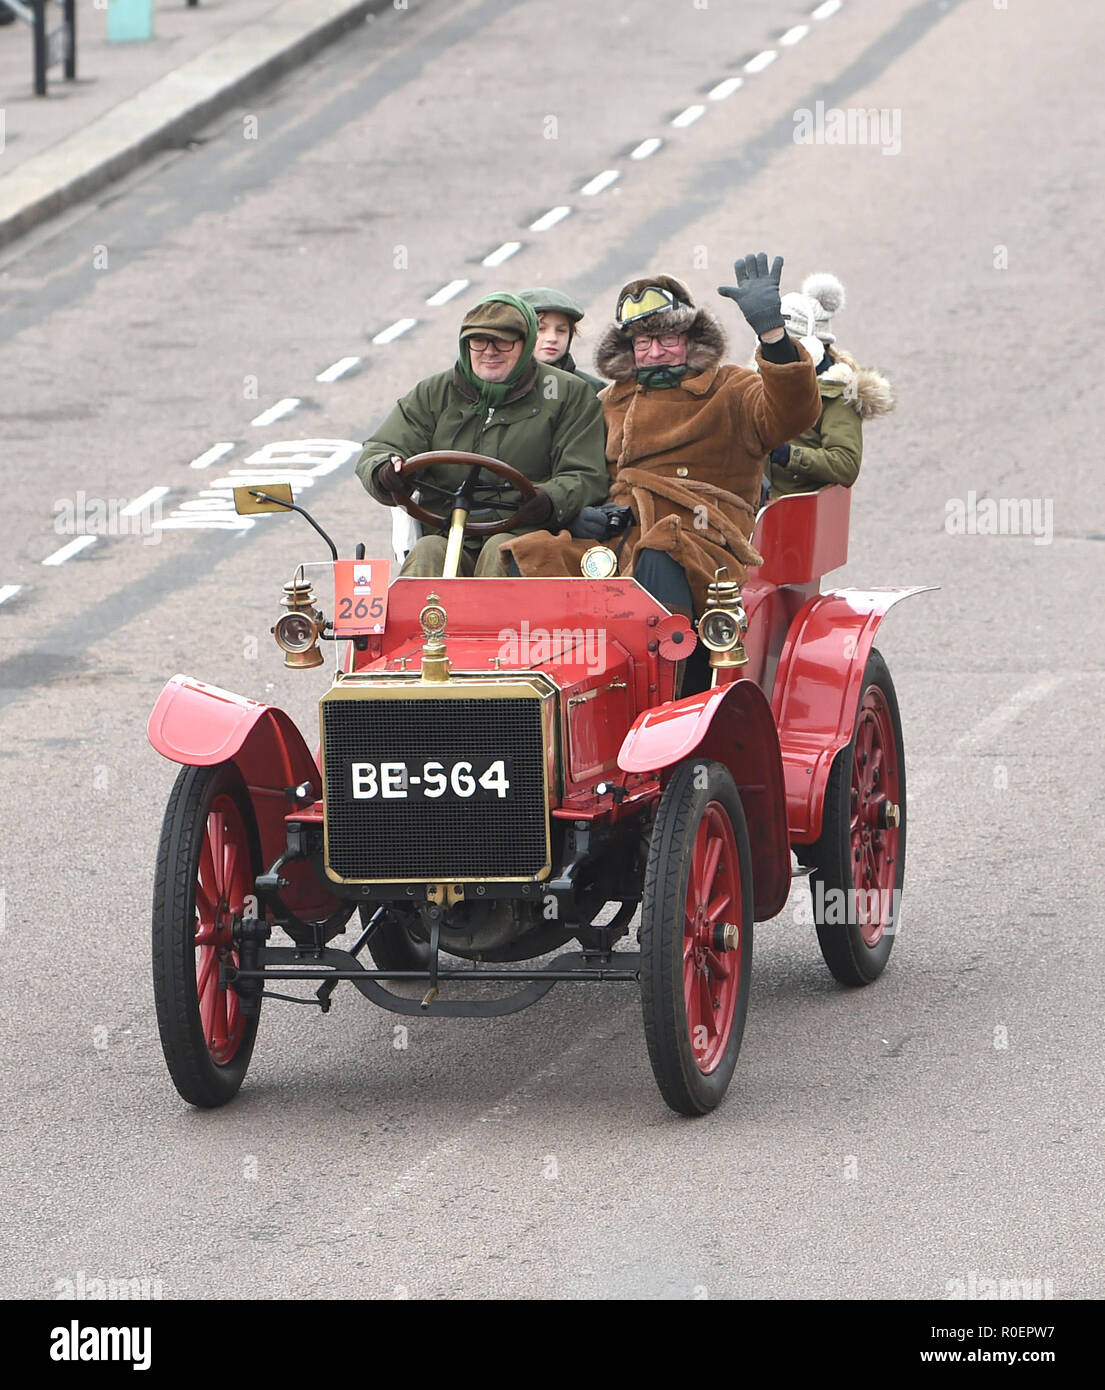 Brighton UK 4th November 2018 - Viscount Randal Dunluce in a 1903 Martini at the finish line in the annual Bonhams London to Brighton Veteran Car Run supported by Hiscox . The run which starts in Hyde Park London and finishes in Madeira Drive on Brighton seafront is open to four-wheeled cars, tri-cars and motor tricycles manufactured before 1st January 1905 Credit: Simon Dack/Alamy Live News - Stock Image